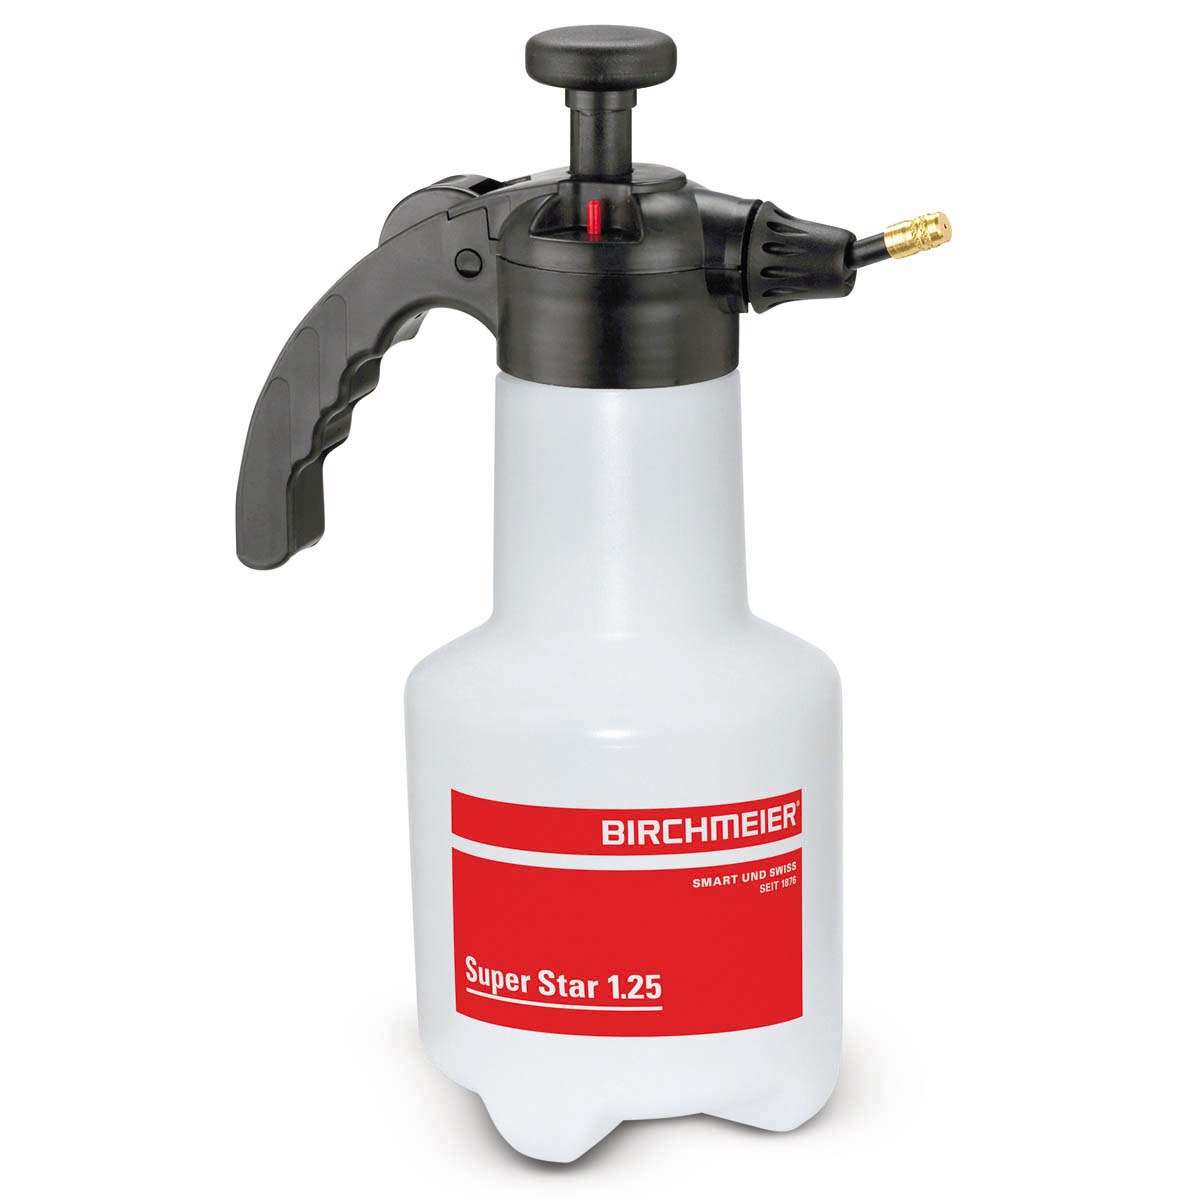 The Small Handy Compression Sprayer For Home And Garden